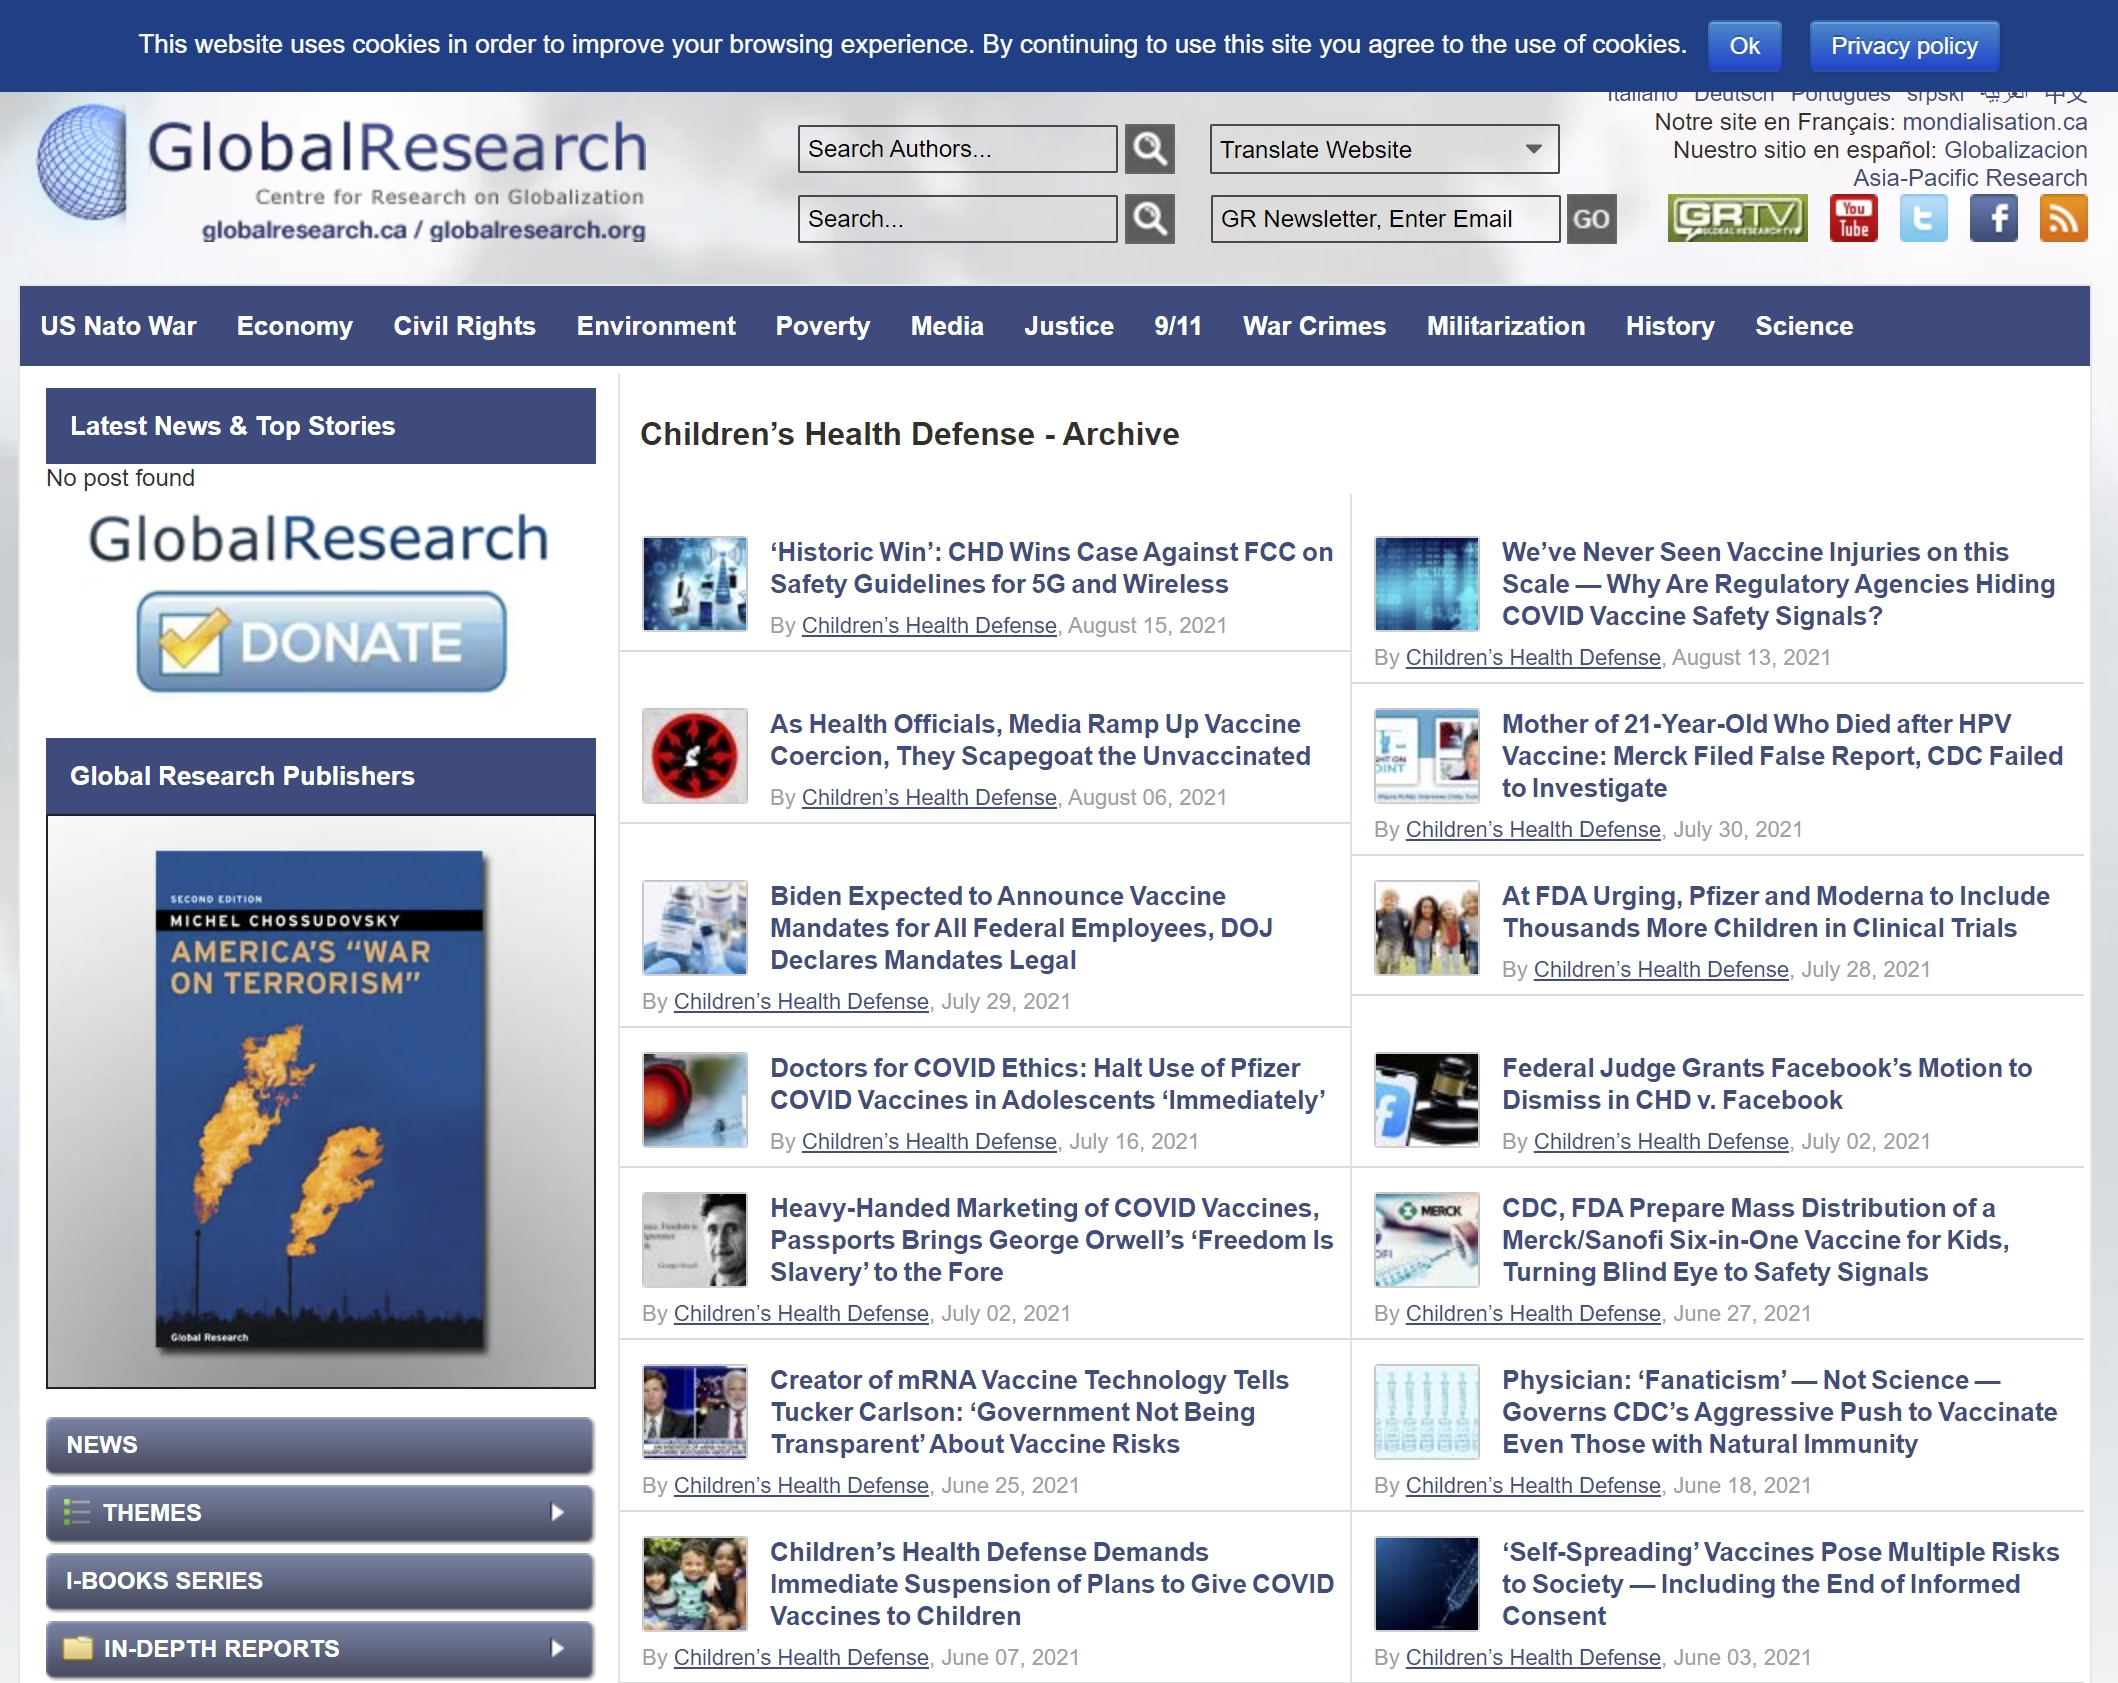 The Global research archive includes many articles from Children's Health Defense.